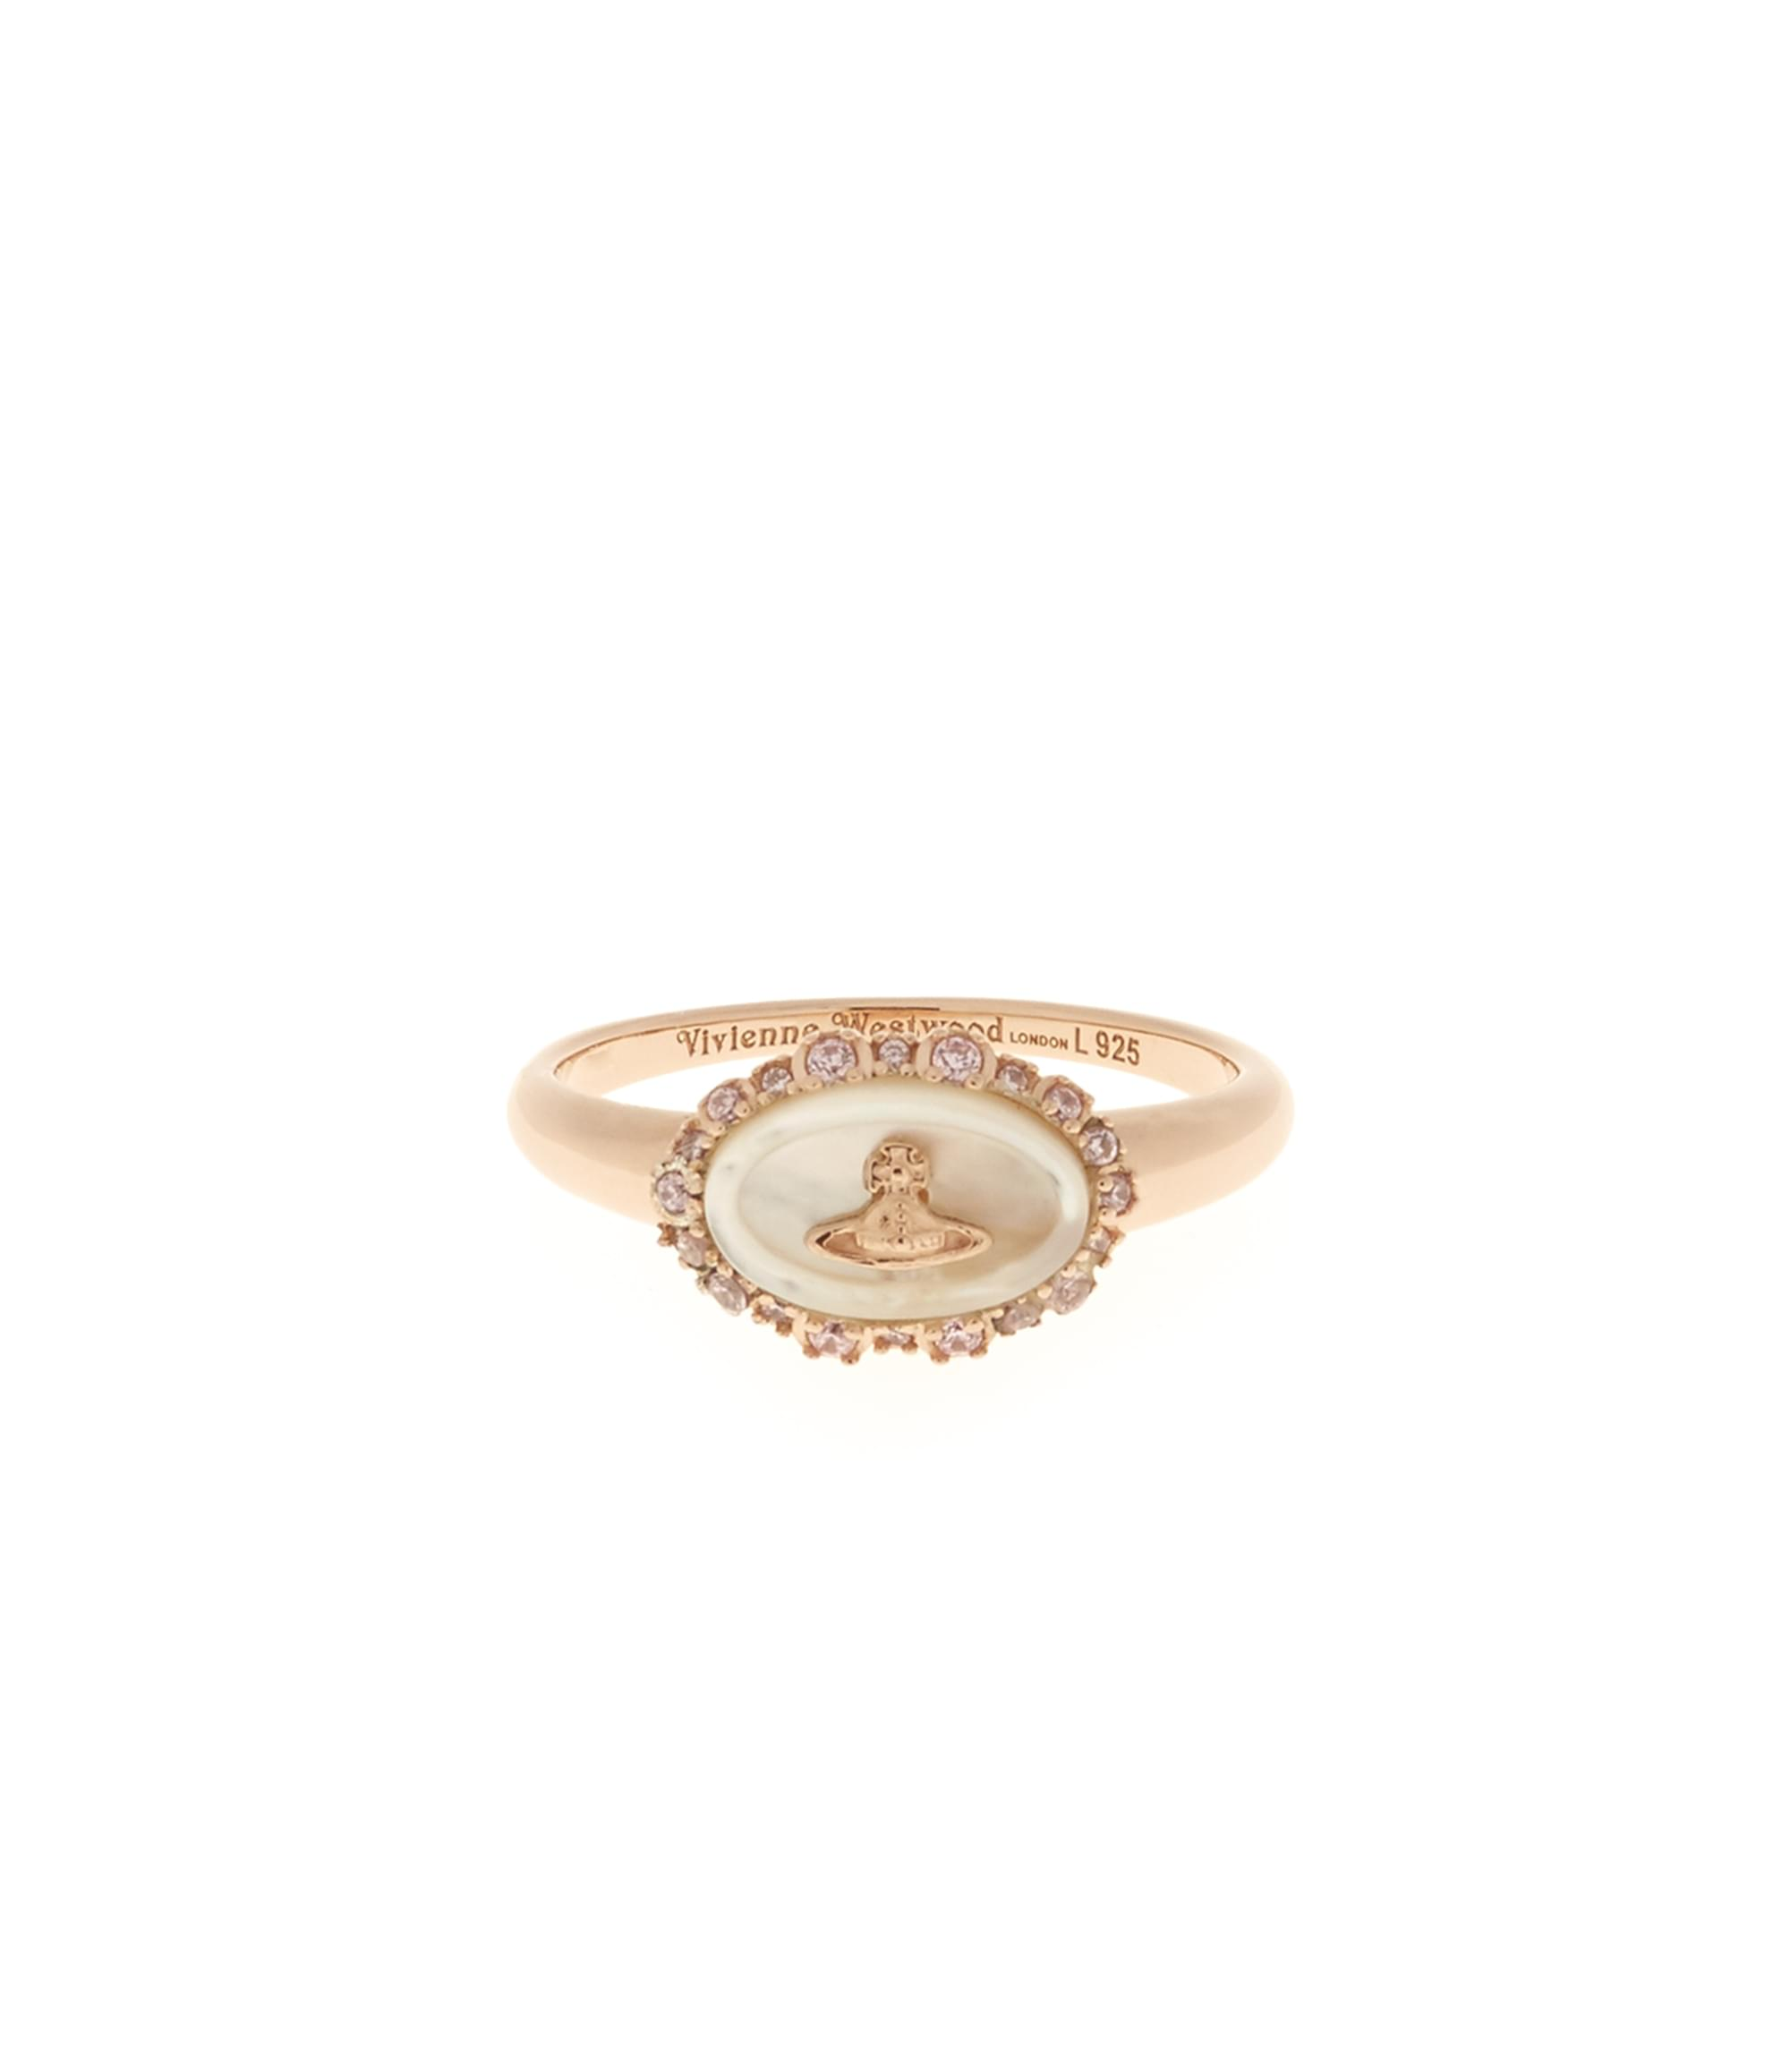 Vivienne Westwood Sterling Silver Maja Ring Pink Gold